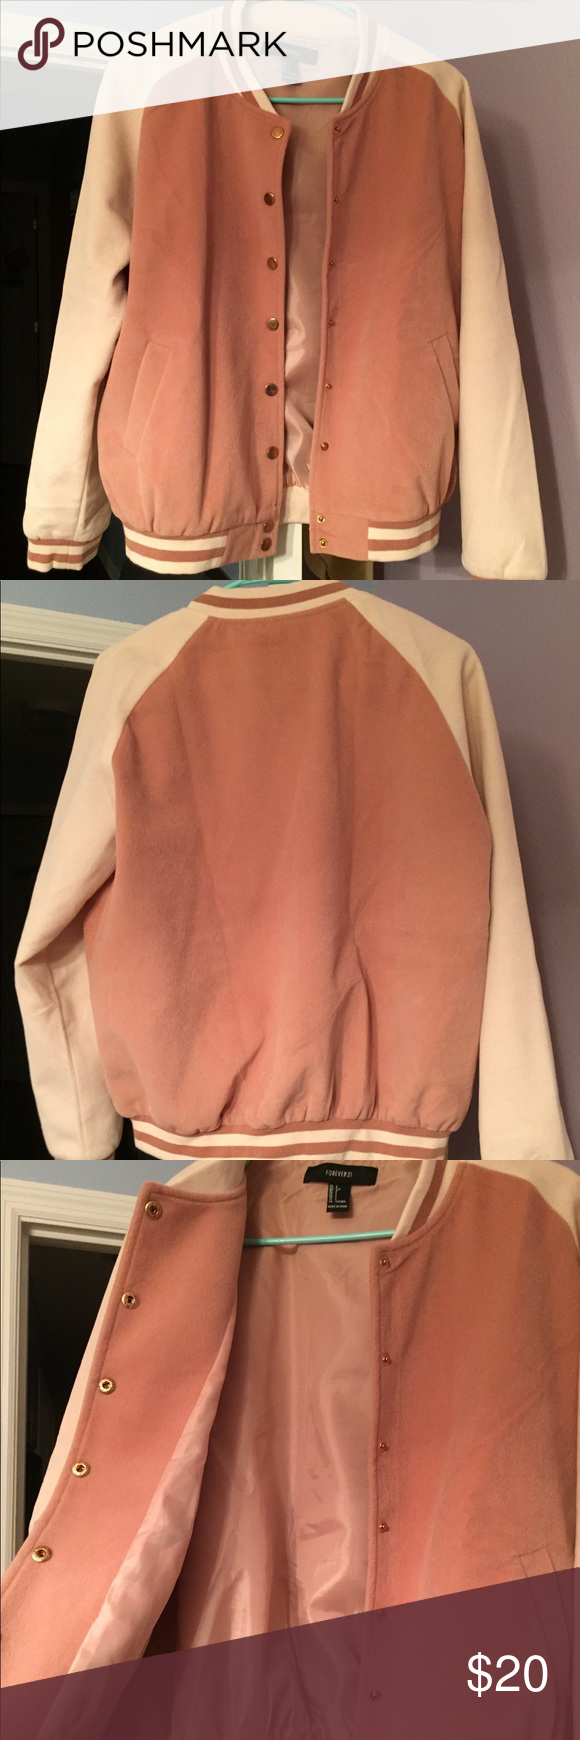 Faux Suede Rose Gold Forever 21 Varsity Jacket Gorgeous trendy bomber/varsity jacket, only worn once. Very rose gold vibes! Coloring: millennial pink sleeves and mauve-y pink for the body of the jacket, gold snap buttons. Forever 21 Jackets & Coats #varsityjacketoutfit